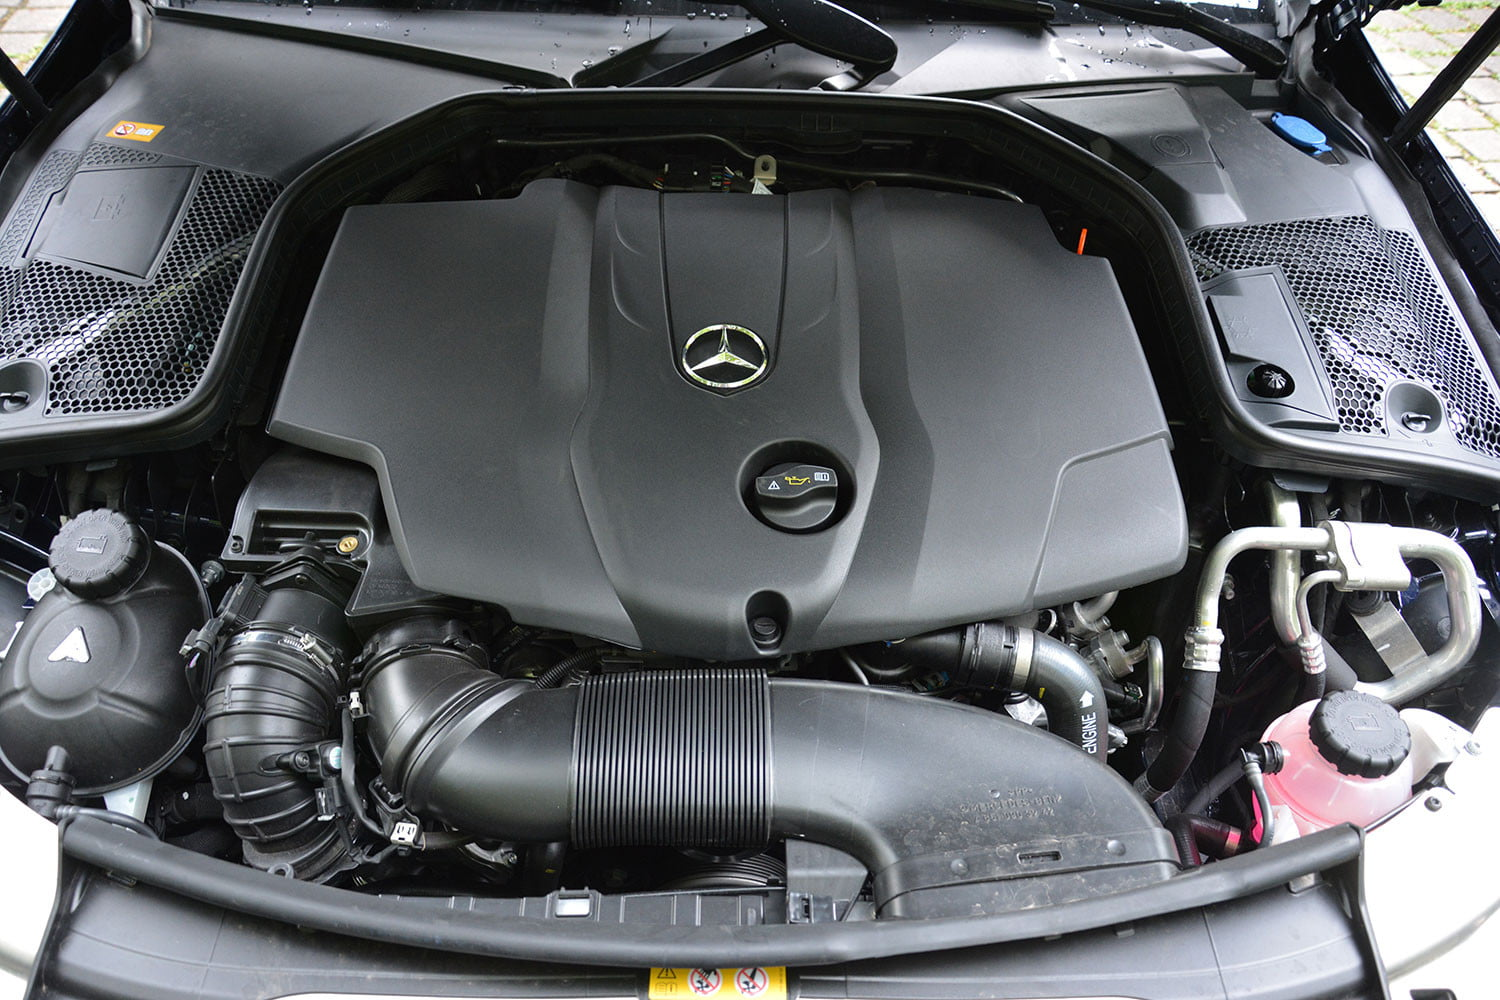 Mercedes benz c250d review specs driving impressions for Mercedes benz engines specifications